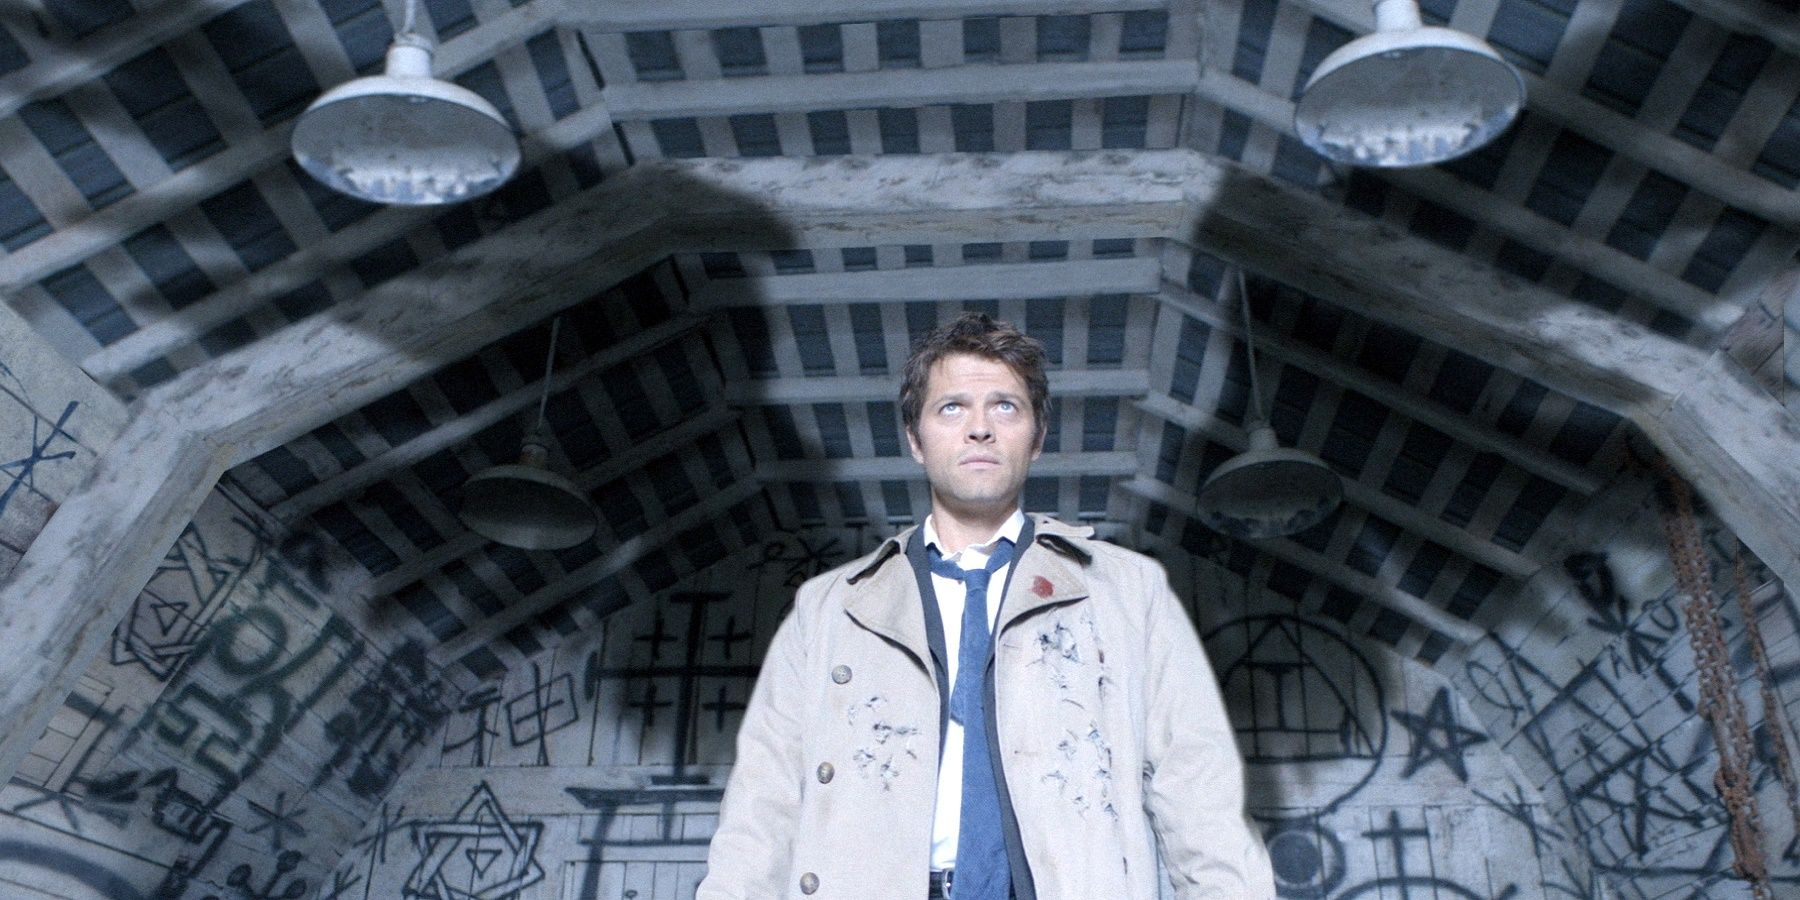 The 20 Most Powerful Characters In Supernatural - Ranked